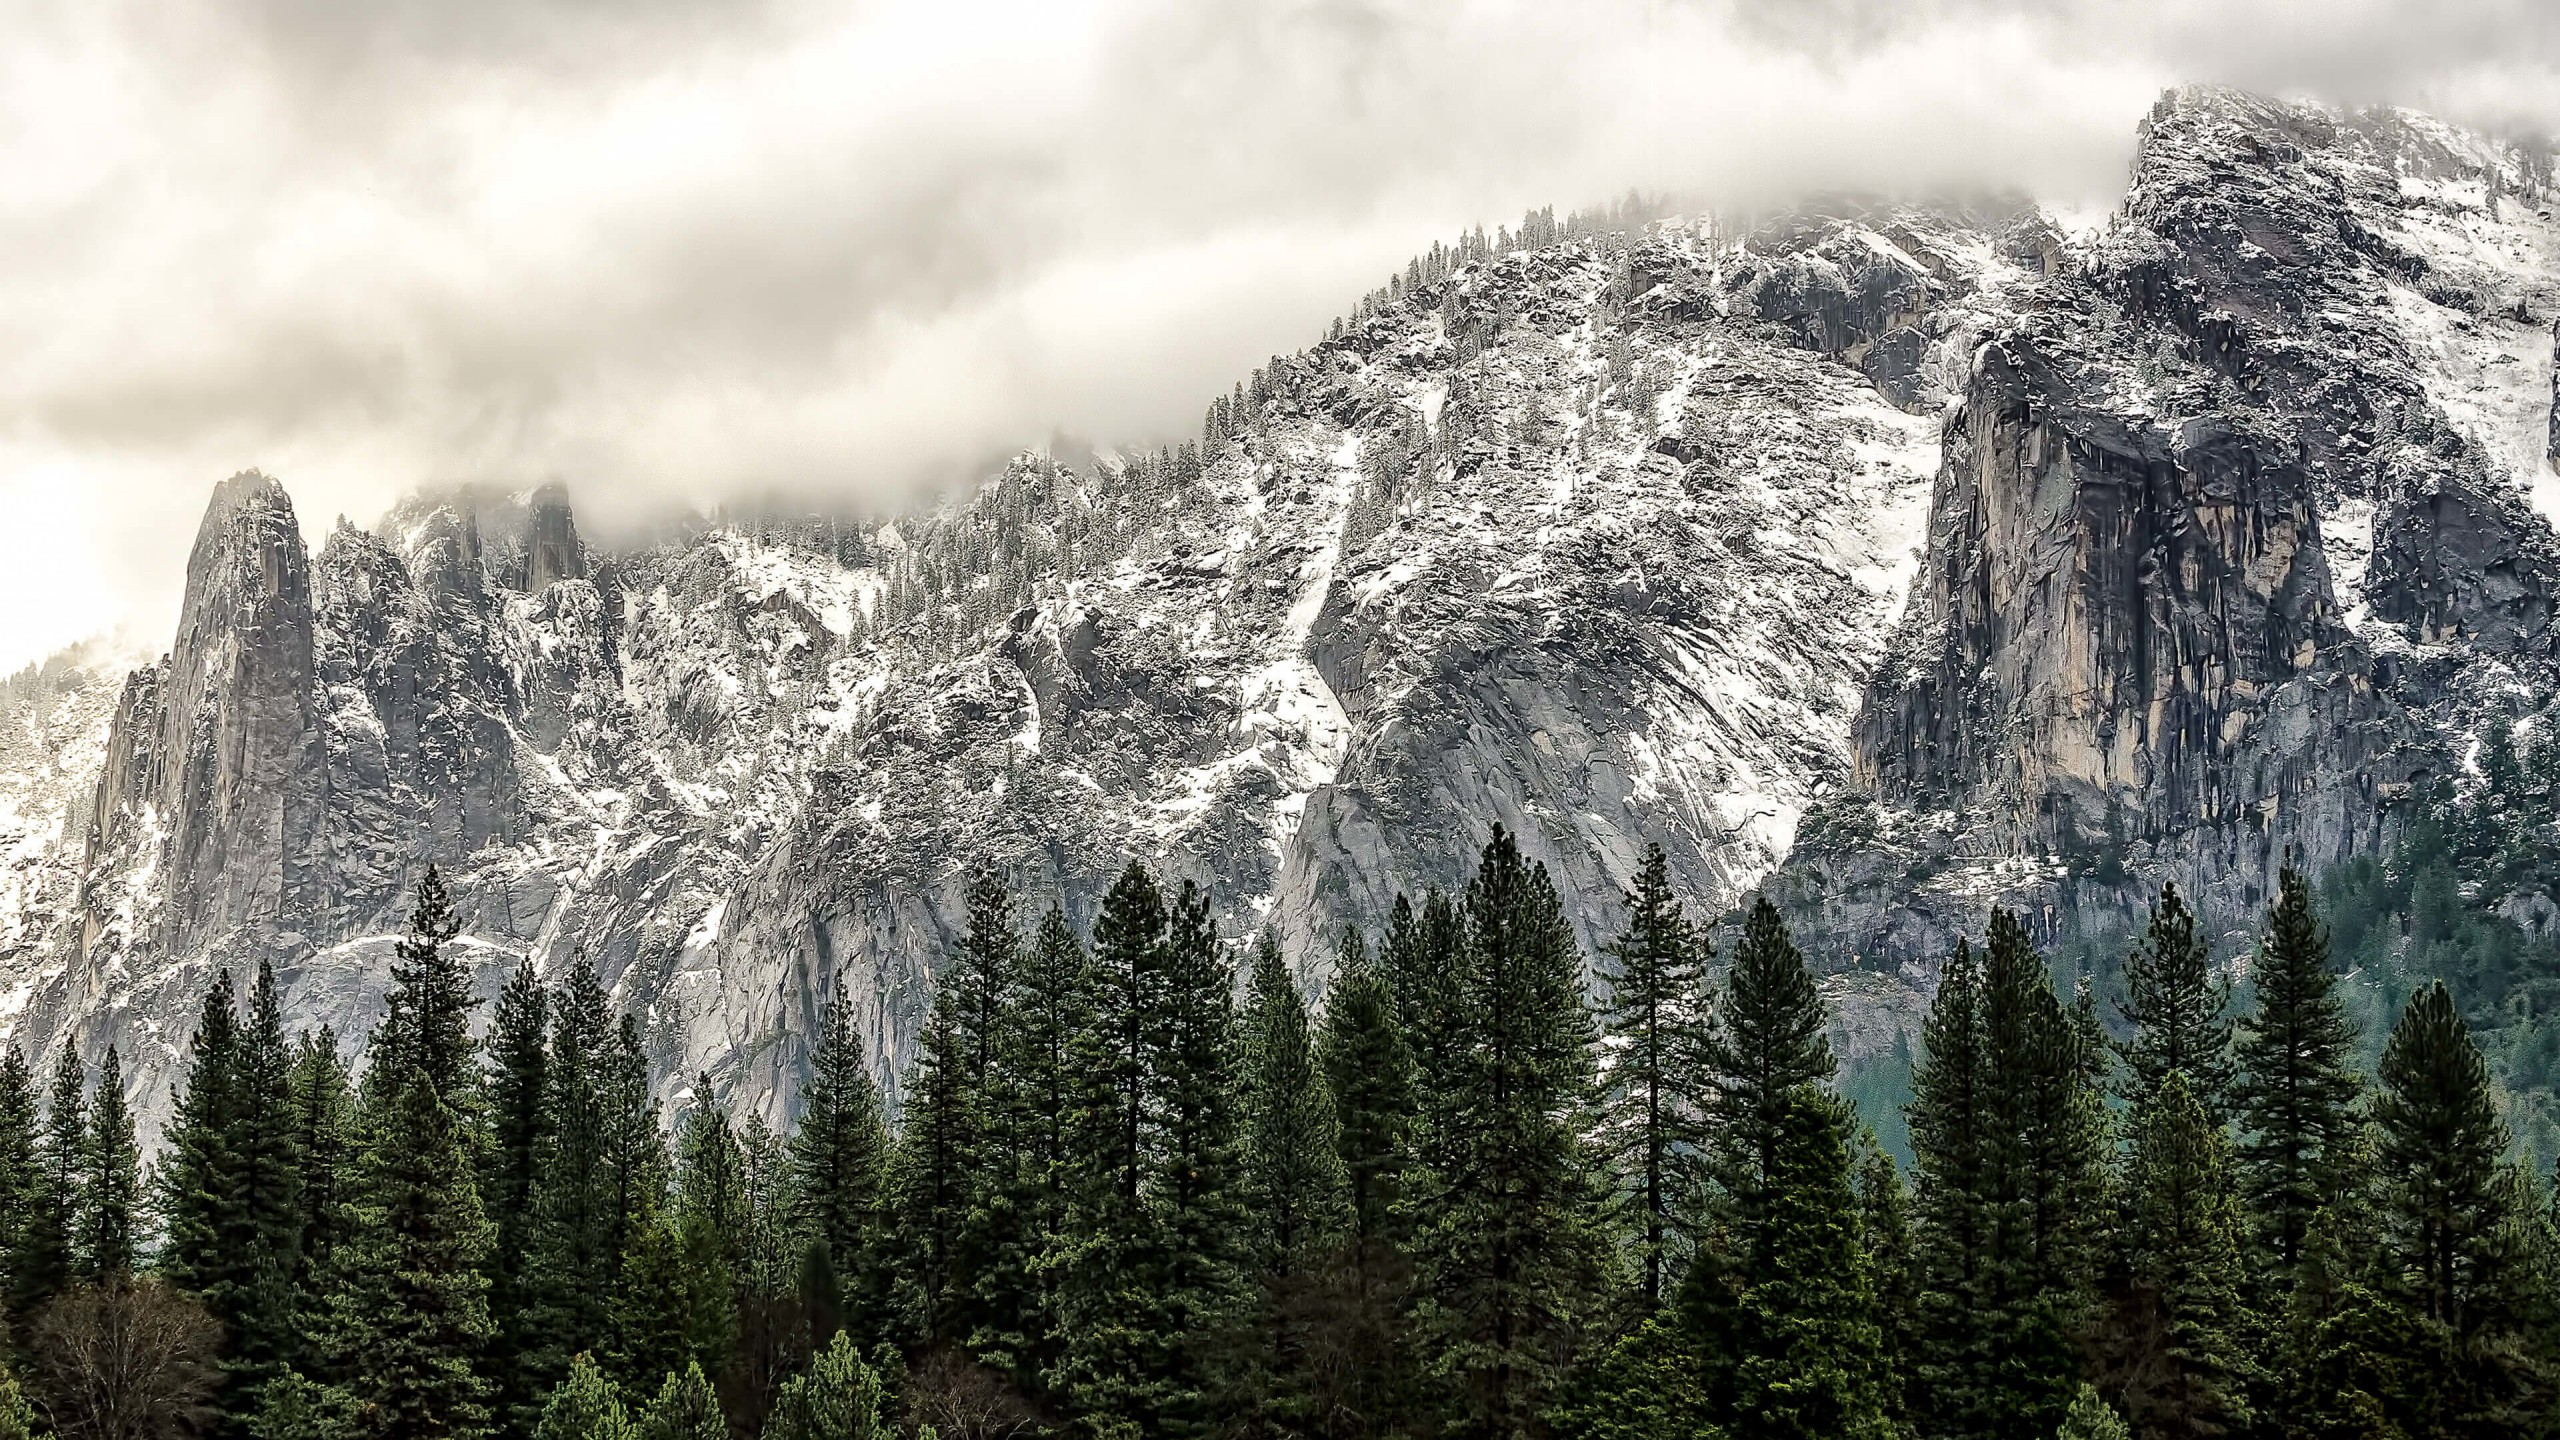 Winter Day at Yosemite National Park Wallpaper for Social Media YouTube Channel Art